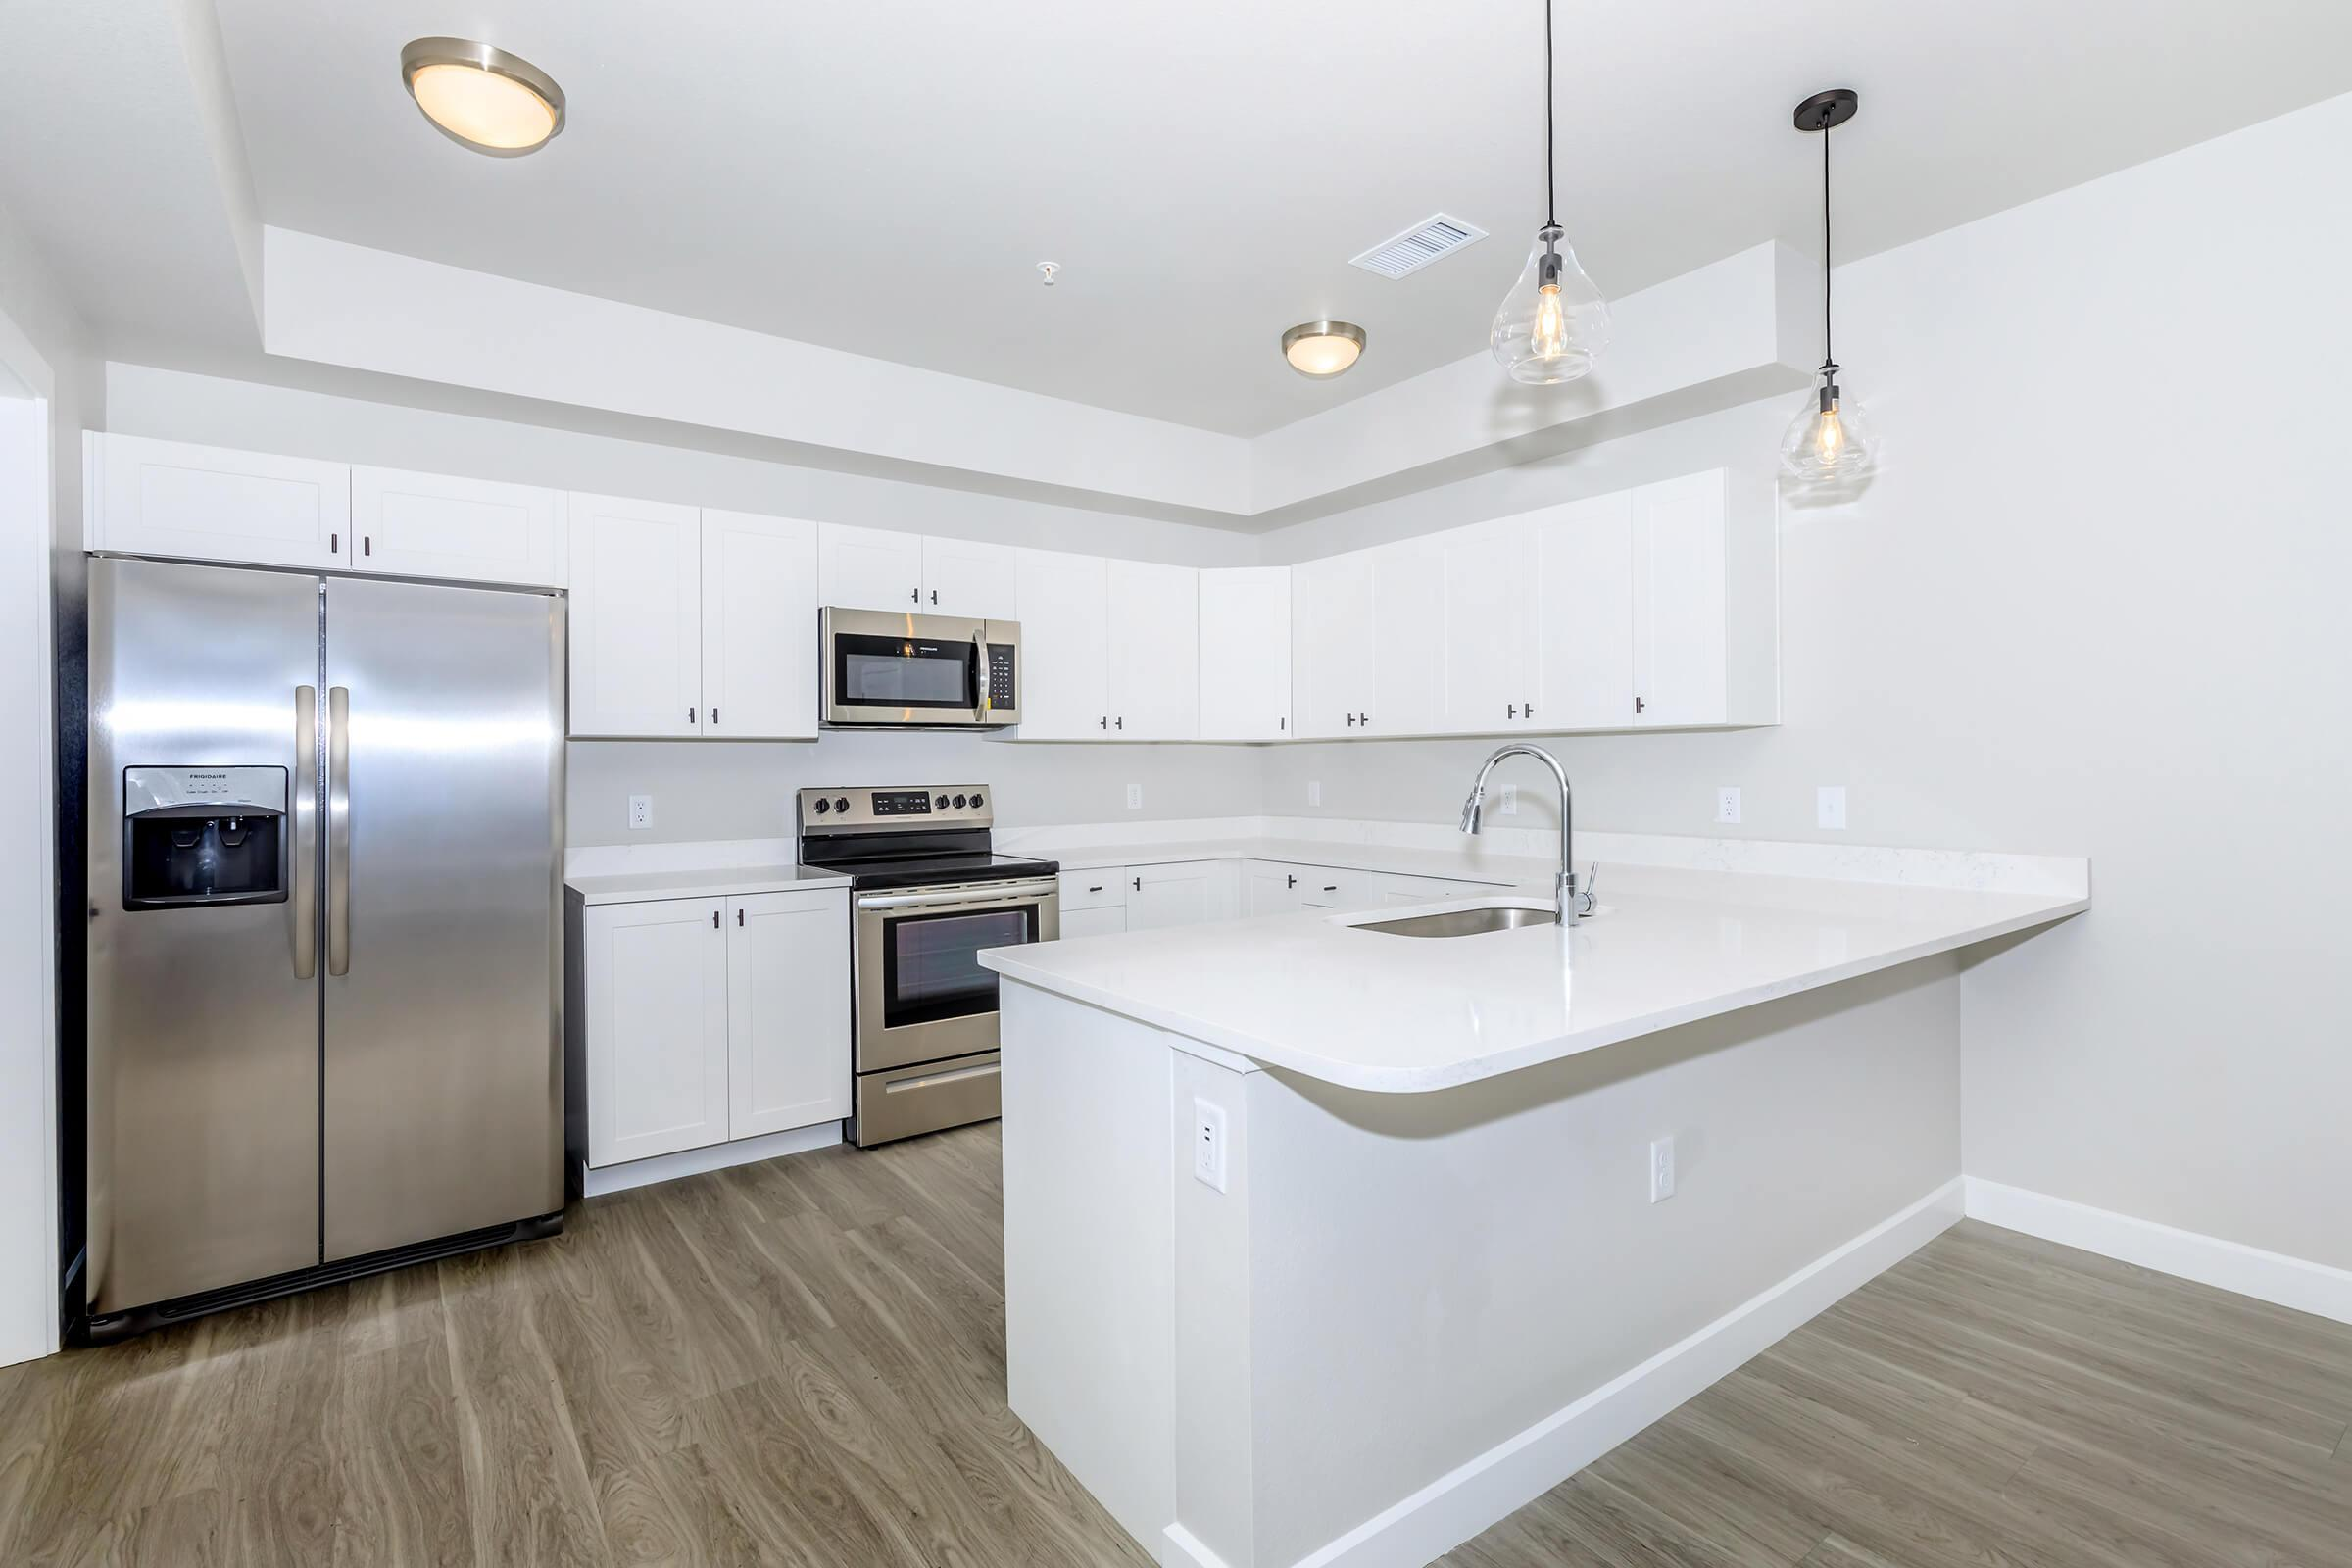 a large kitchen with white cabinets and a sink